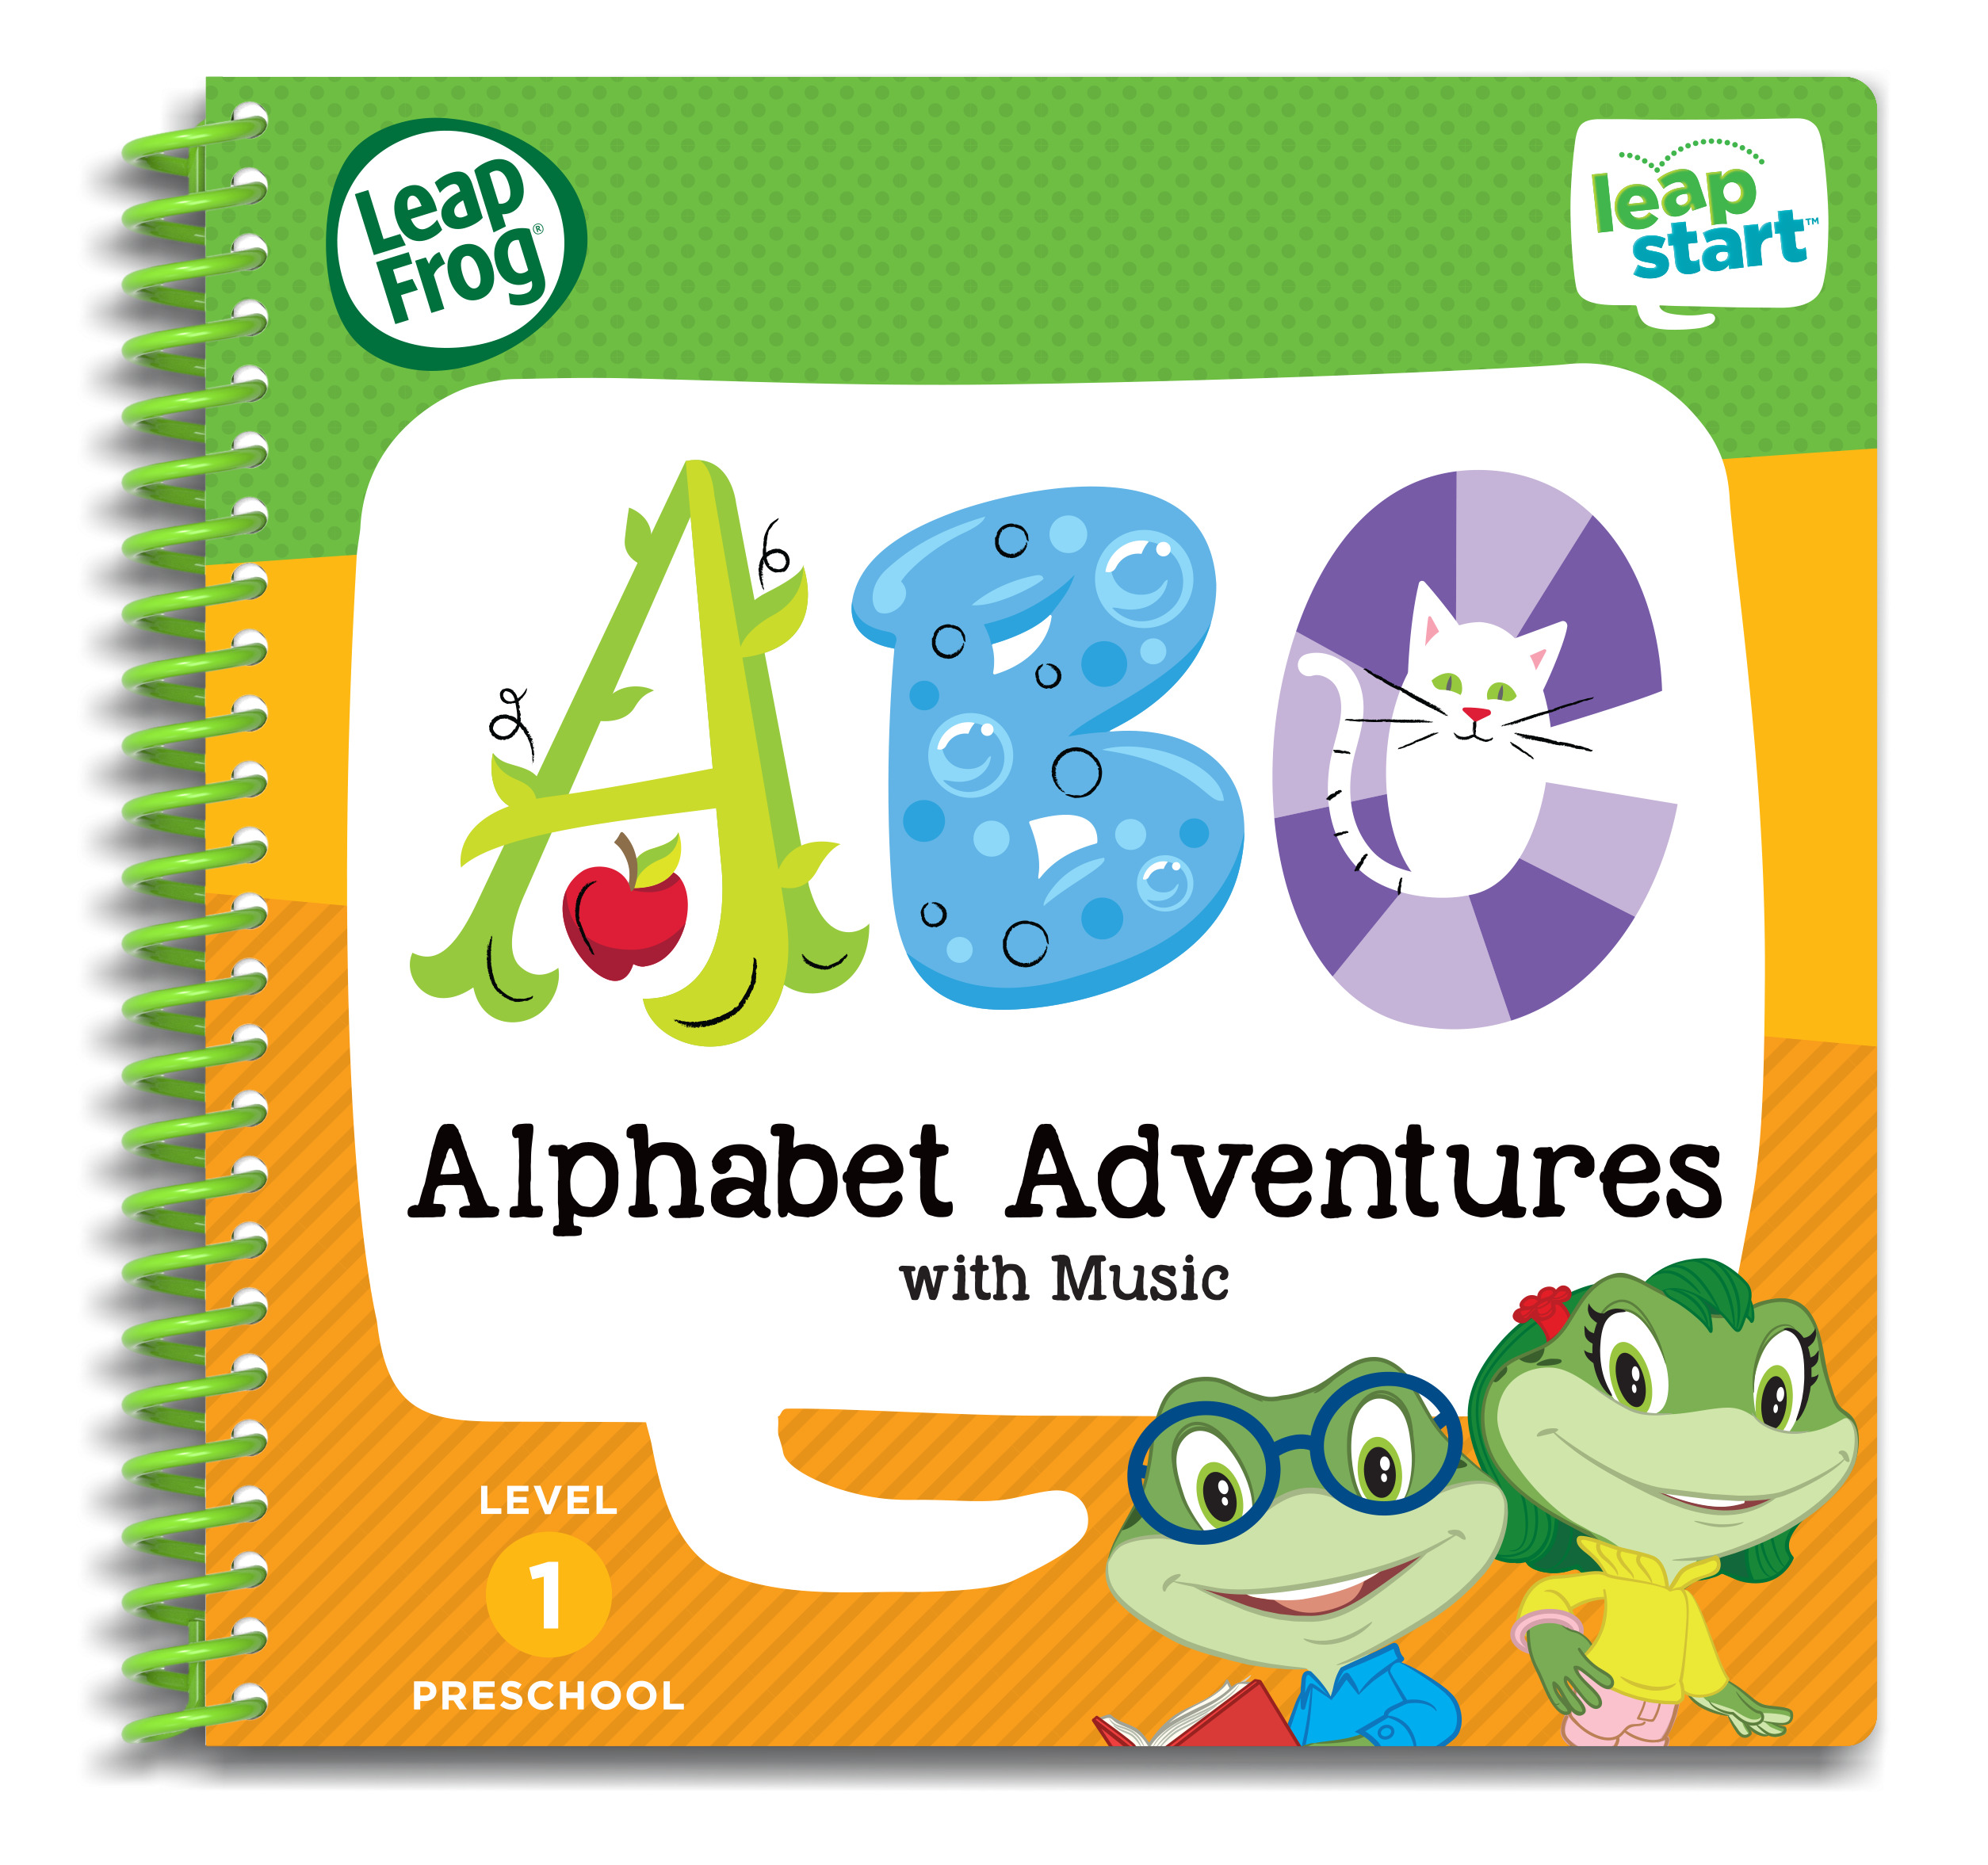 LeapFrog LeapStart Preschool Alphabet Adventures Activity Book by LeapFrog®